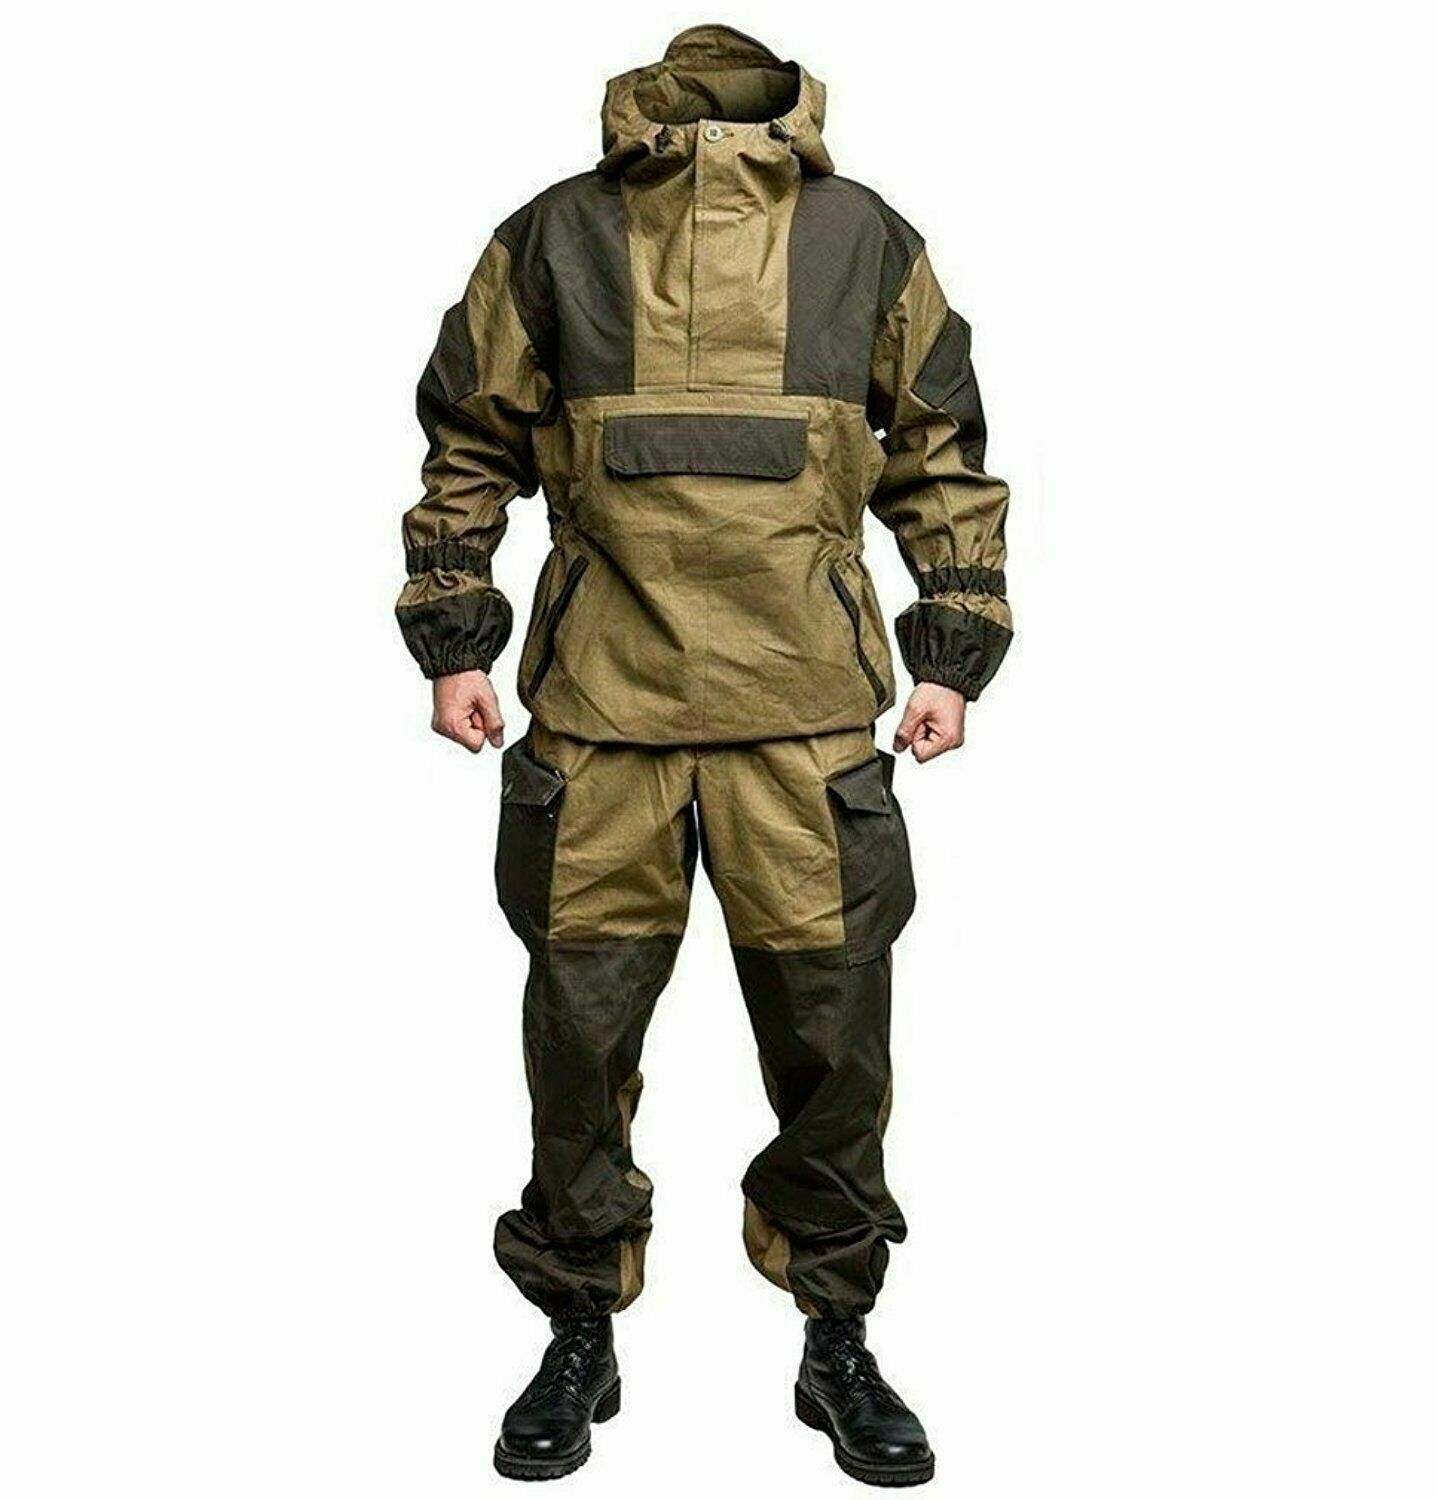 Bars GORKA-4 Genuine Russian Army Special Military  BDU Uniform Camo Hunting Suit  honest service